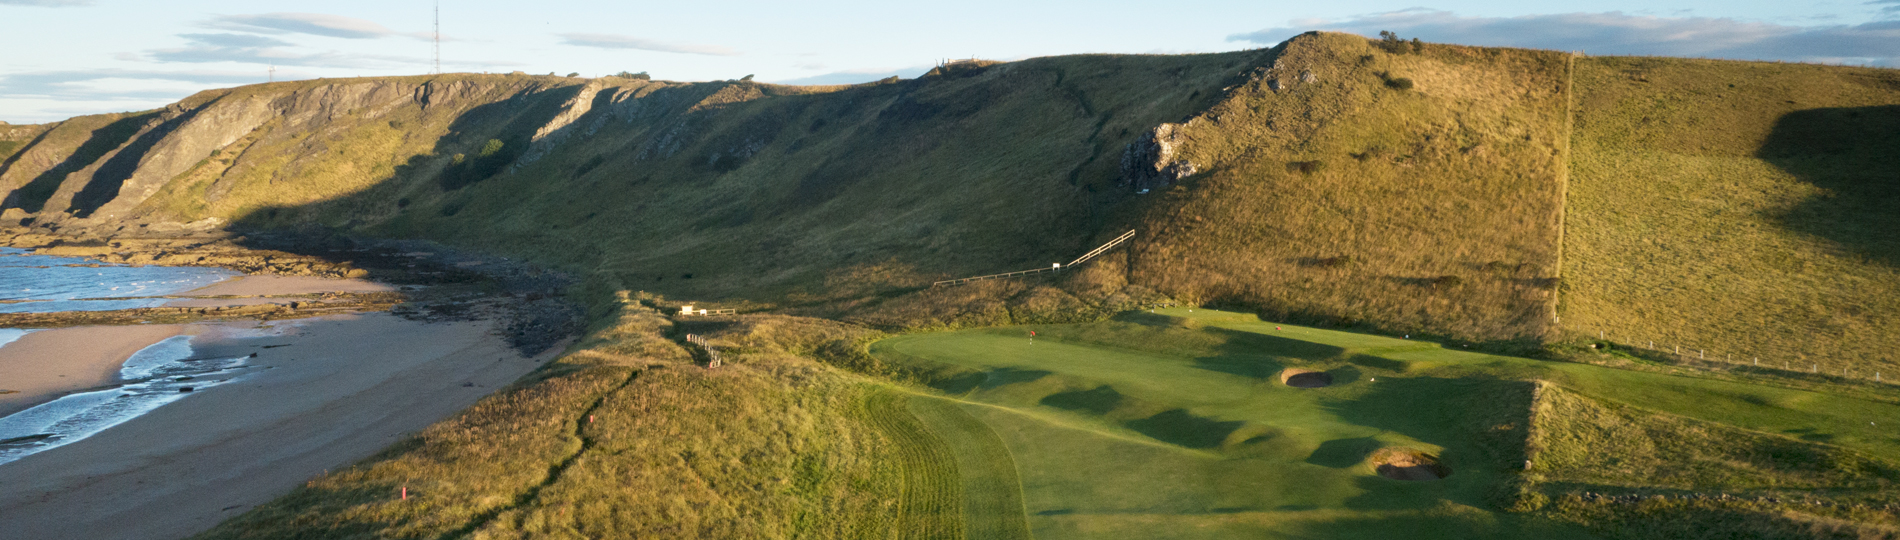 Golf House Club - Elie